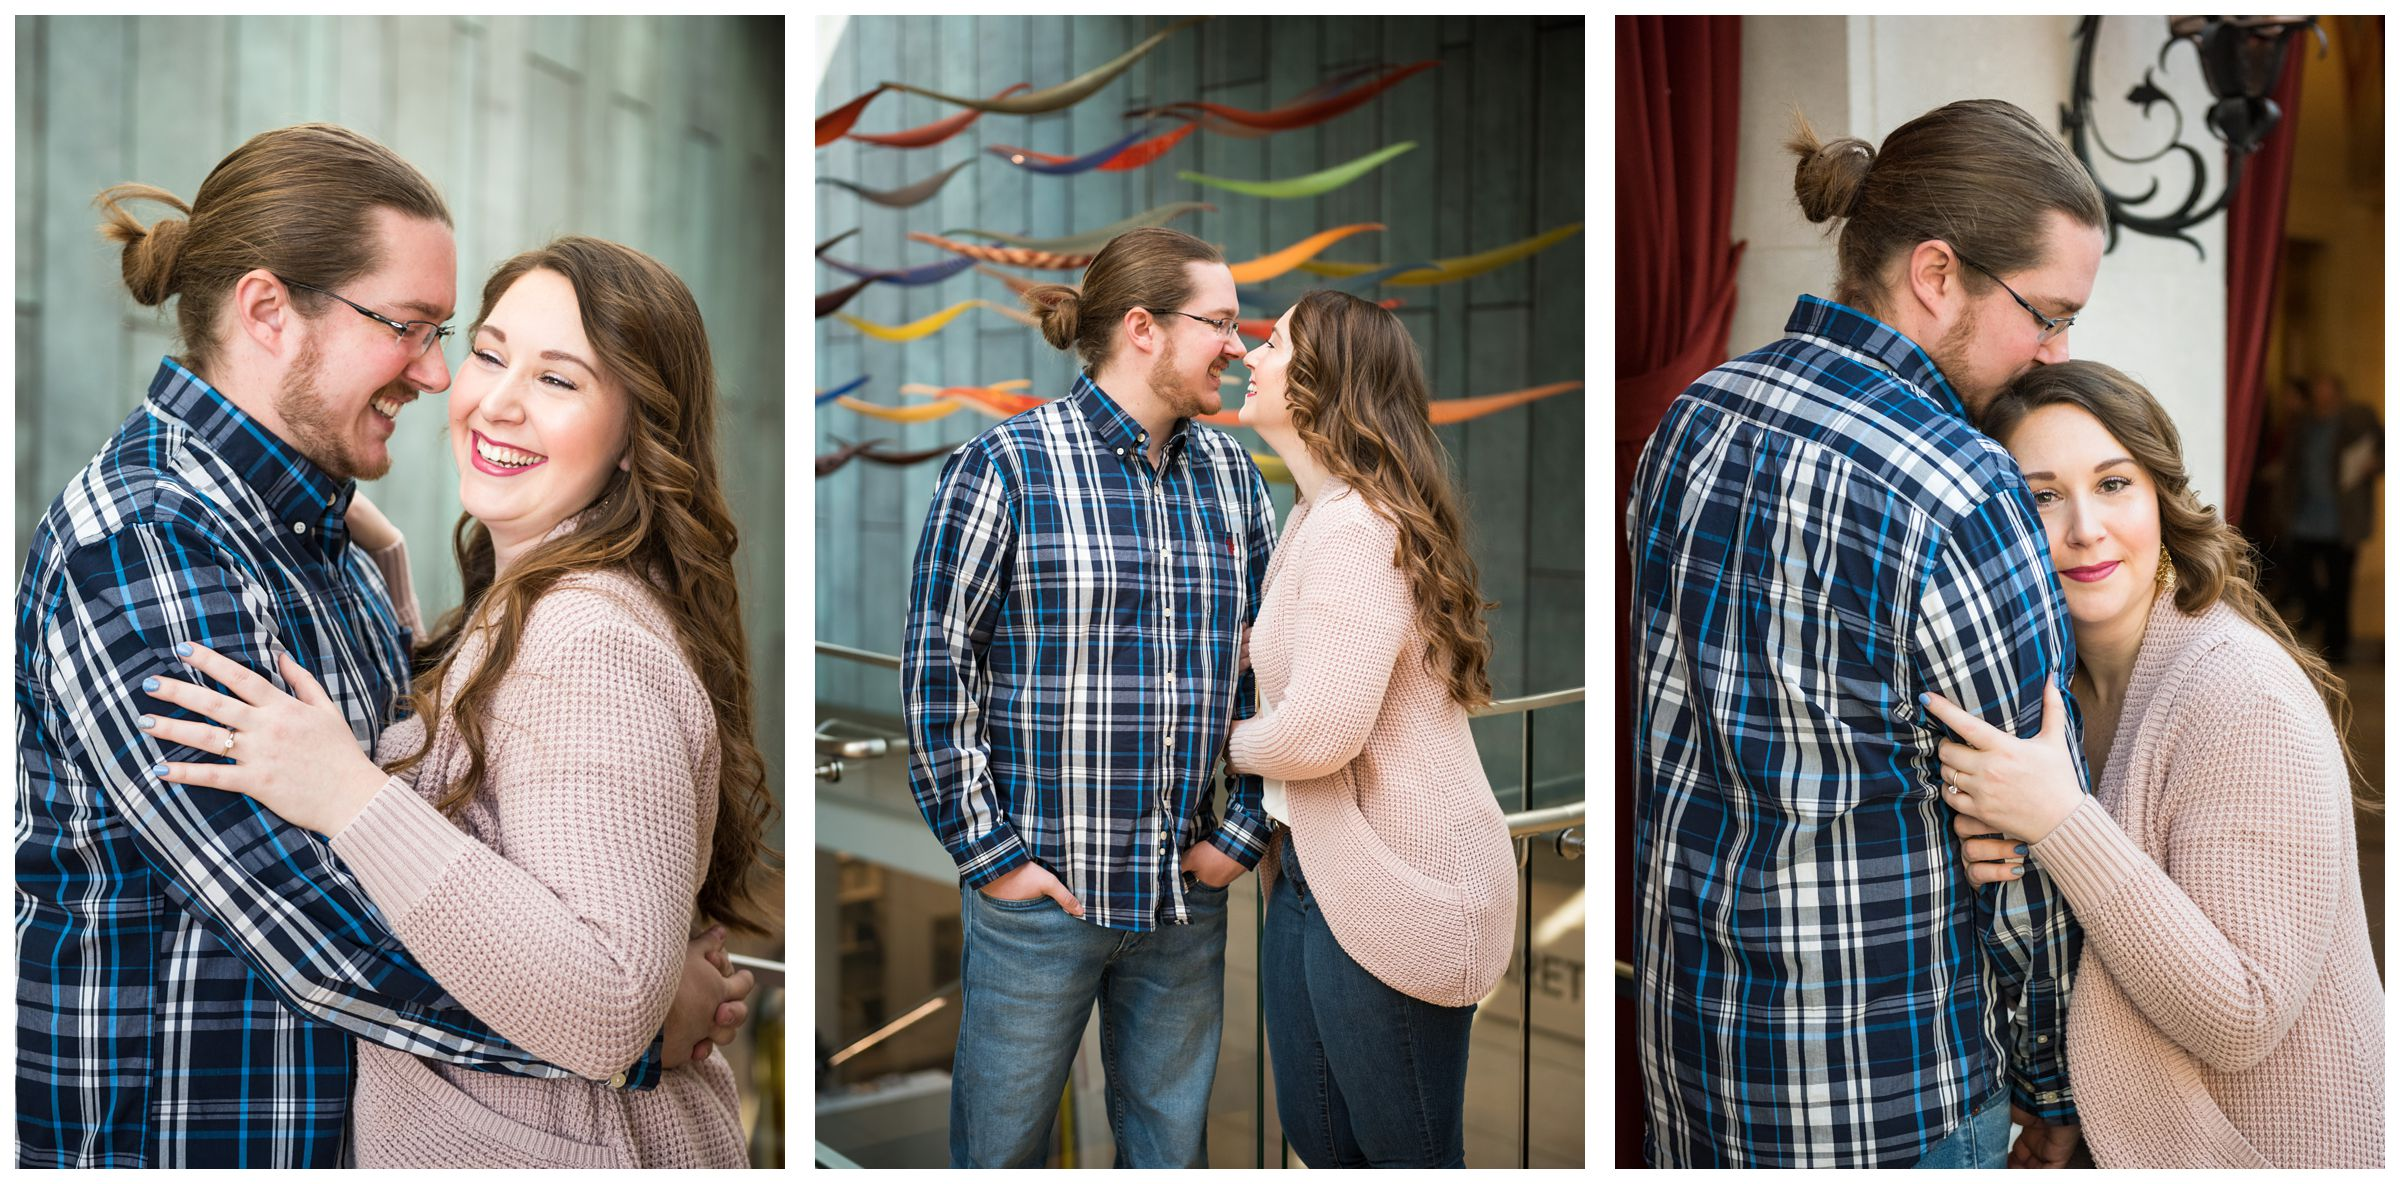 Winter indoor engagement session in the atrium of the Columbus Museum of Art surrounded by colorful hanging glass artwork.